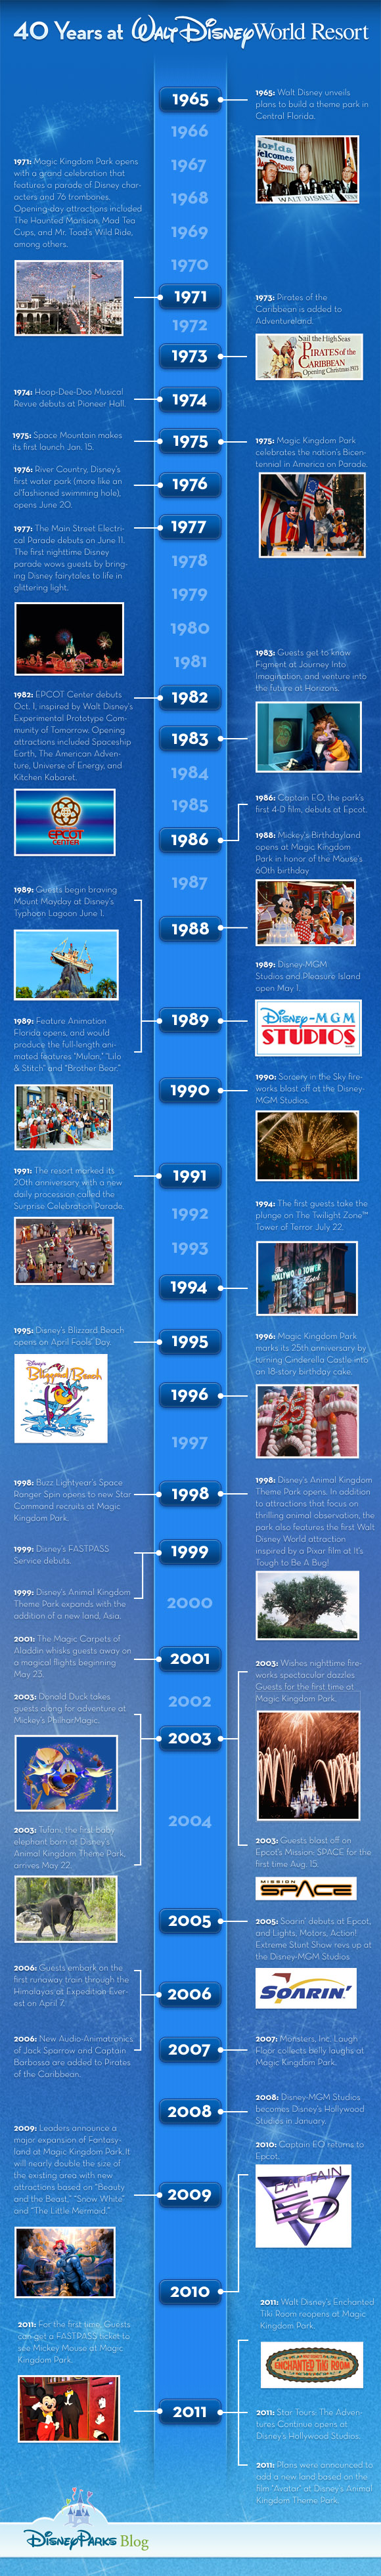 Timeline: Celebrating 40 Years at Walt Disney World Resort